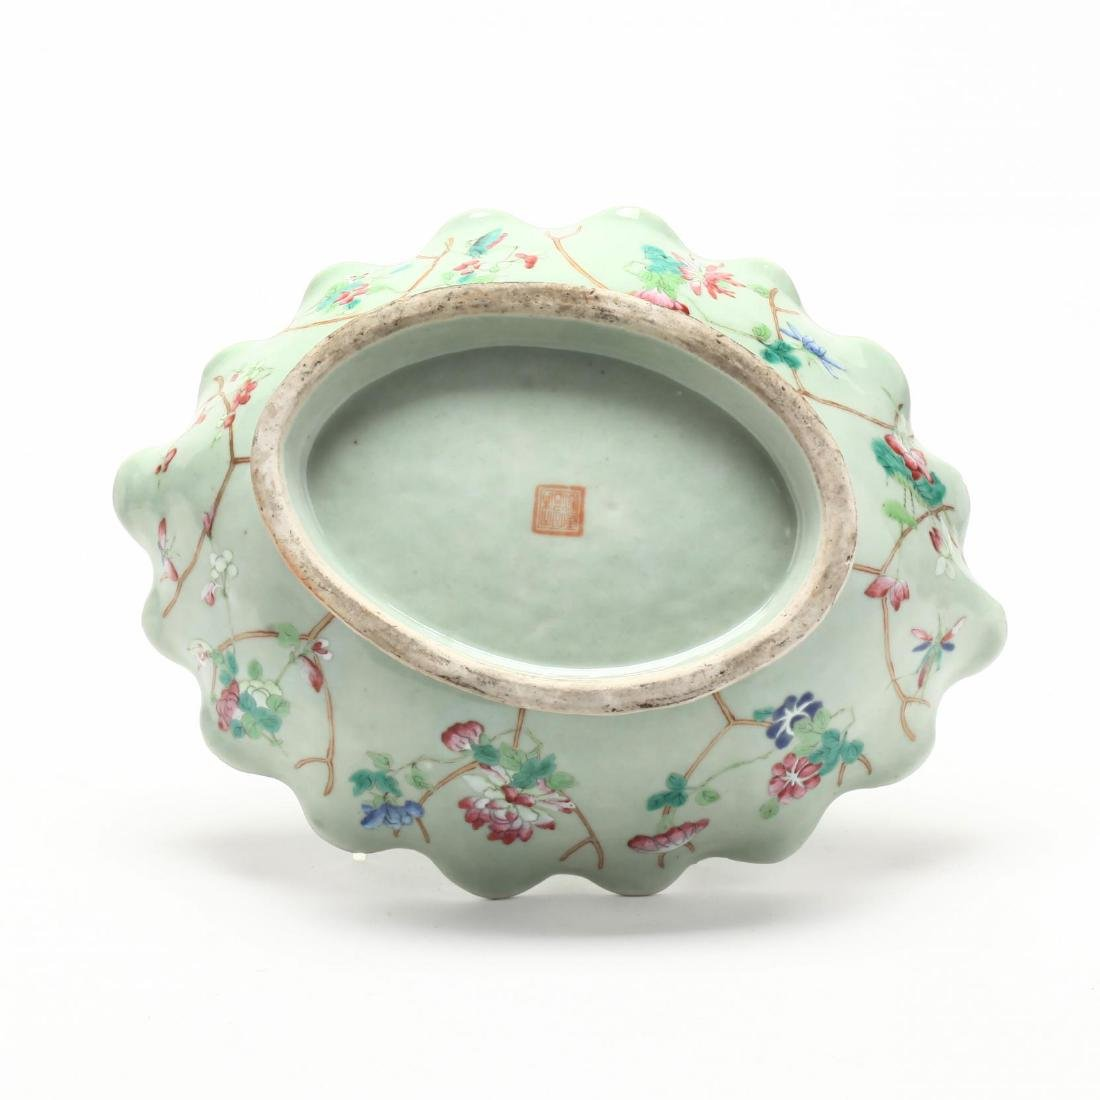 A Group of Chinese Porcelain Tableware - 6